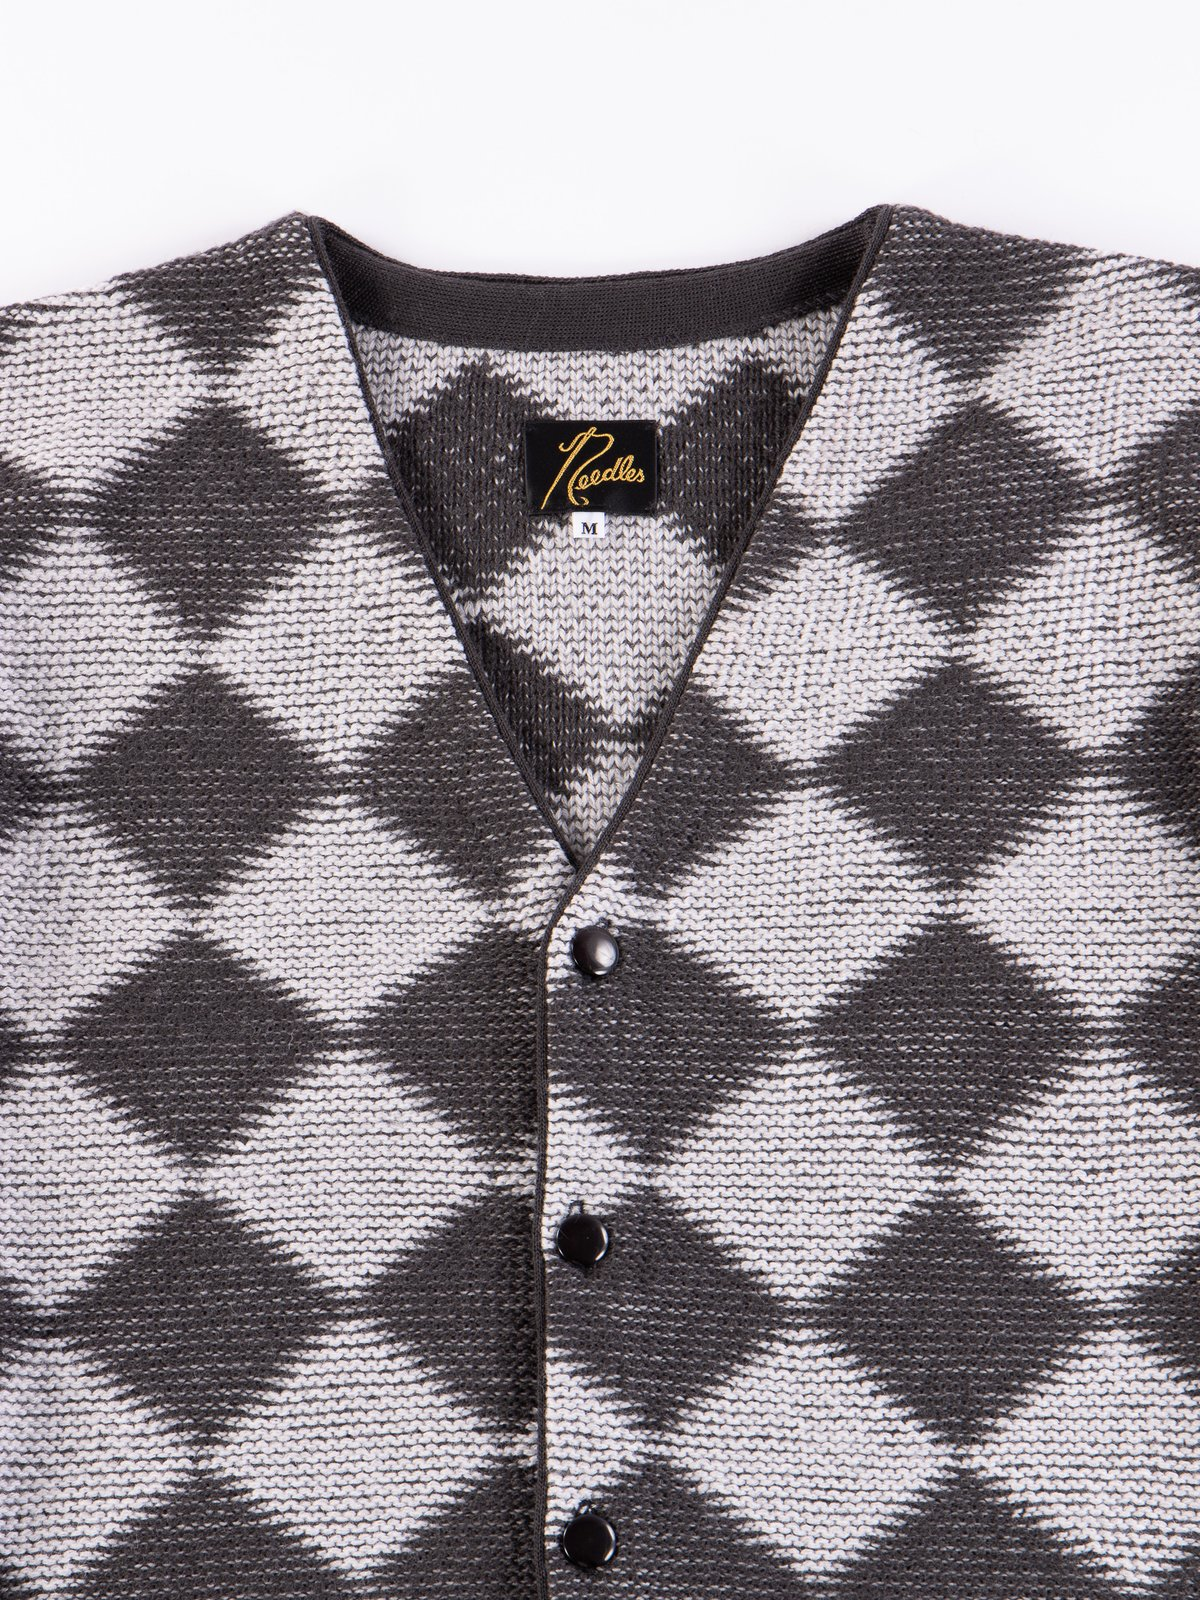 Charcoal Checkered V Neck Cardigan - Image 3